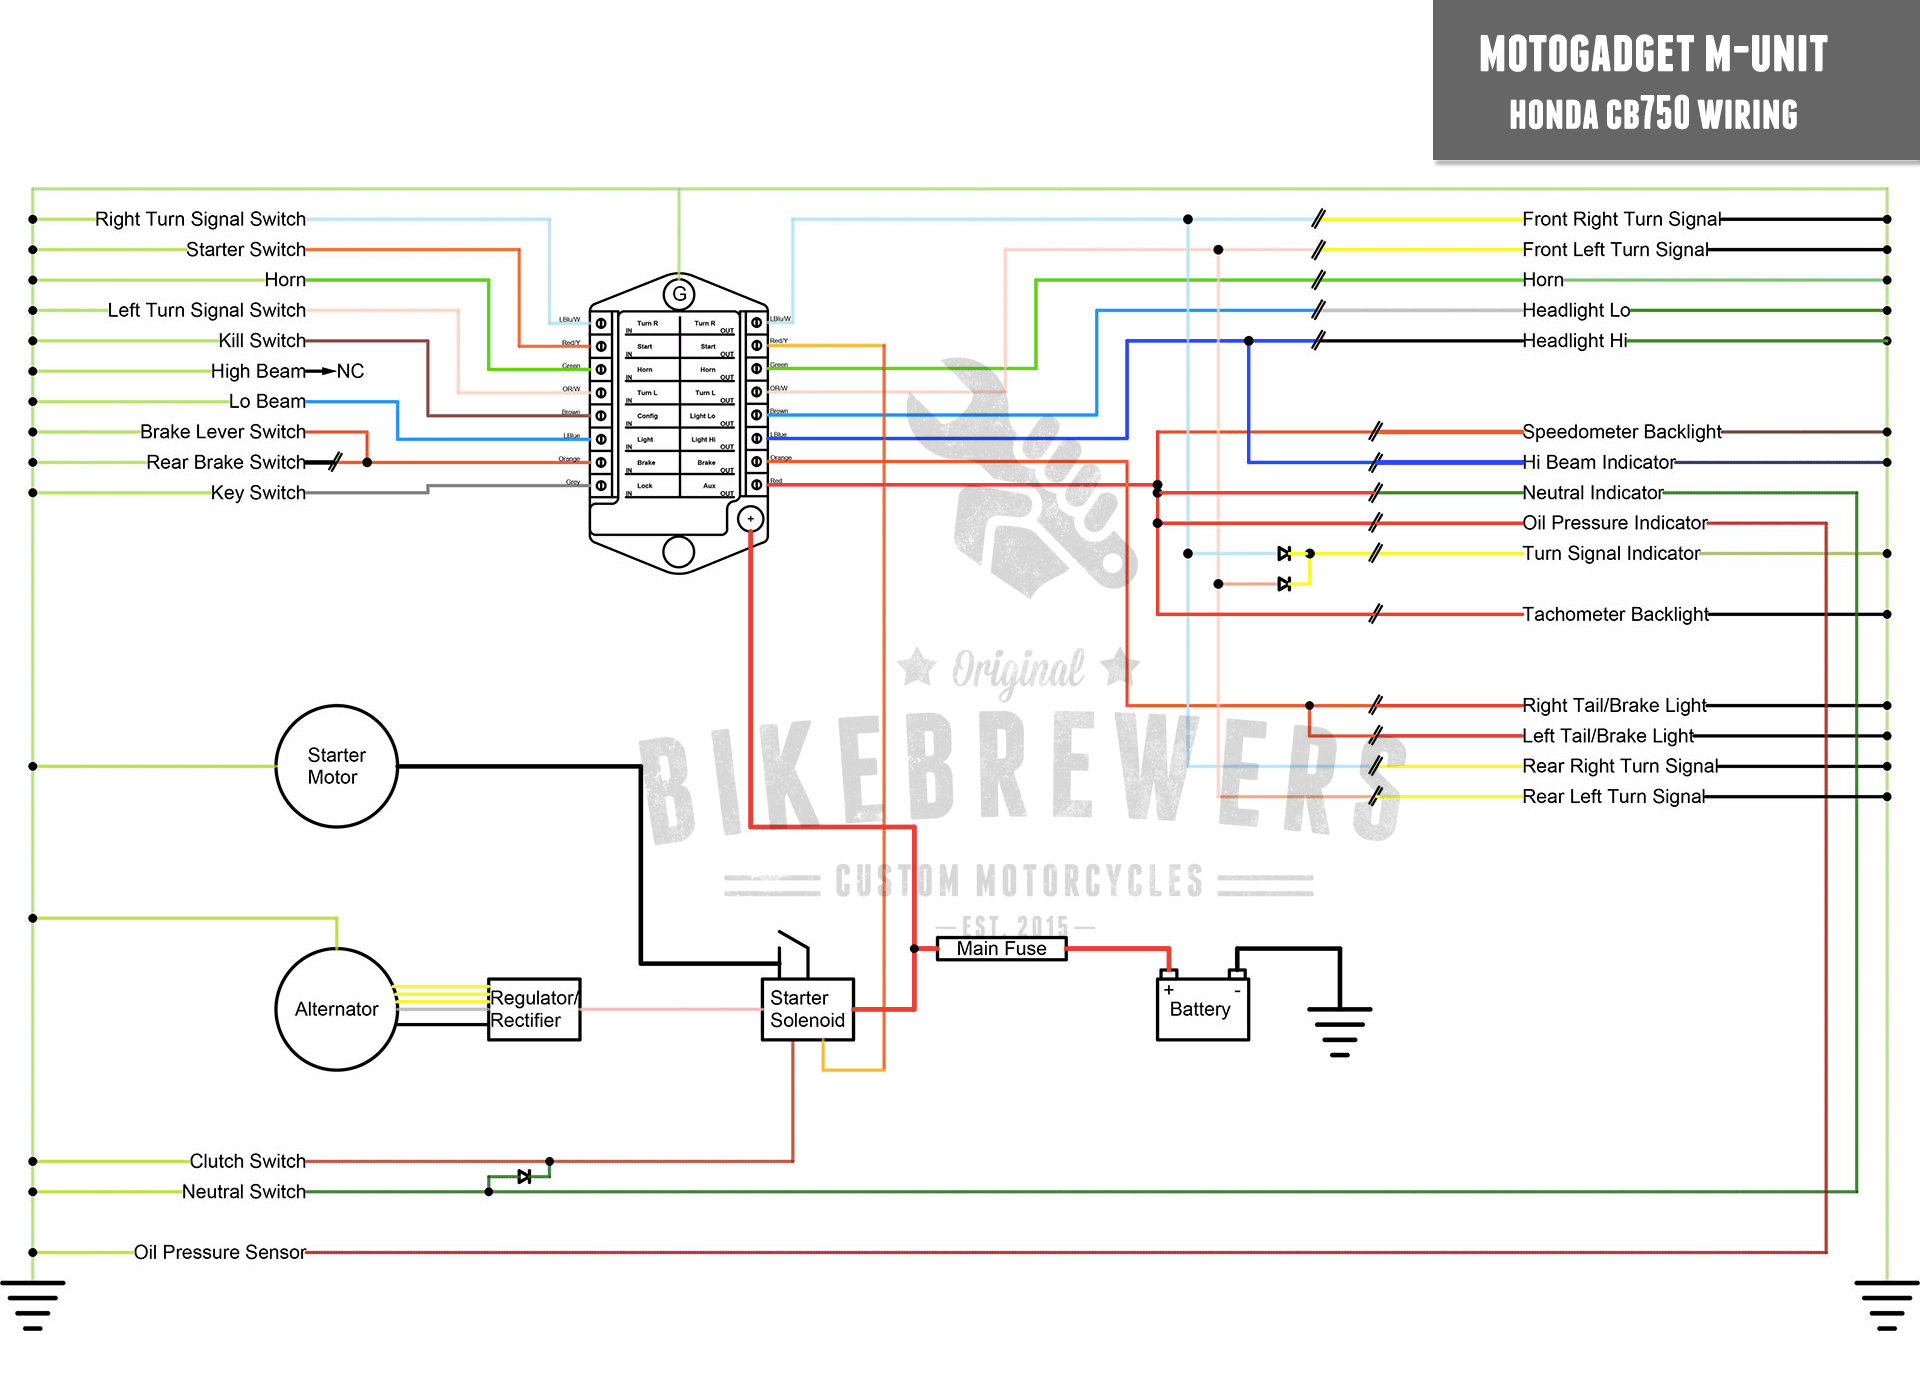 MotoGadget Wiring Honda CB750 motogadget m unit wiring bikebrewers com Electric Motor Wiring Diagram at edmiracle.co